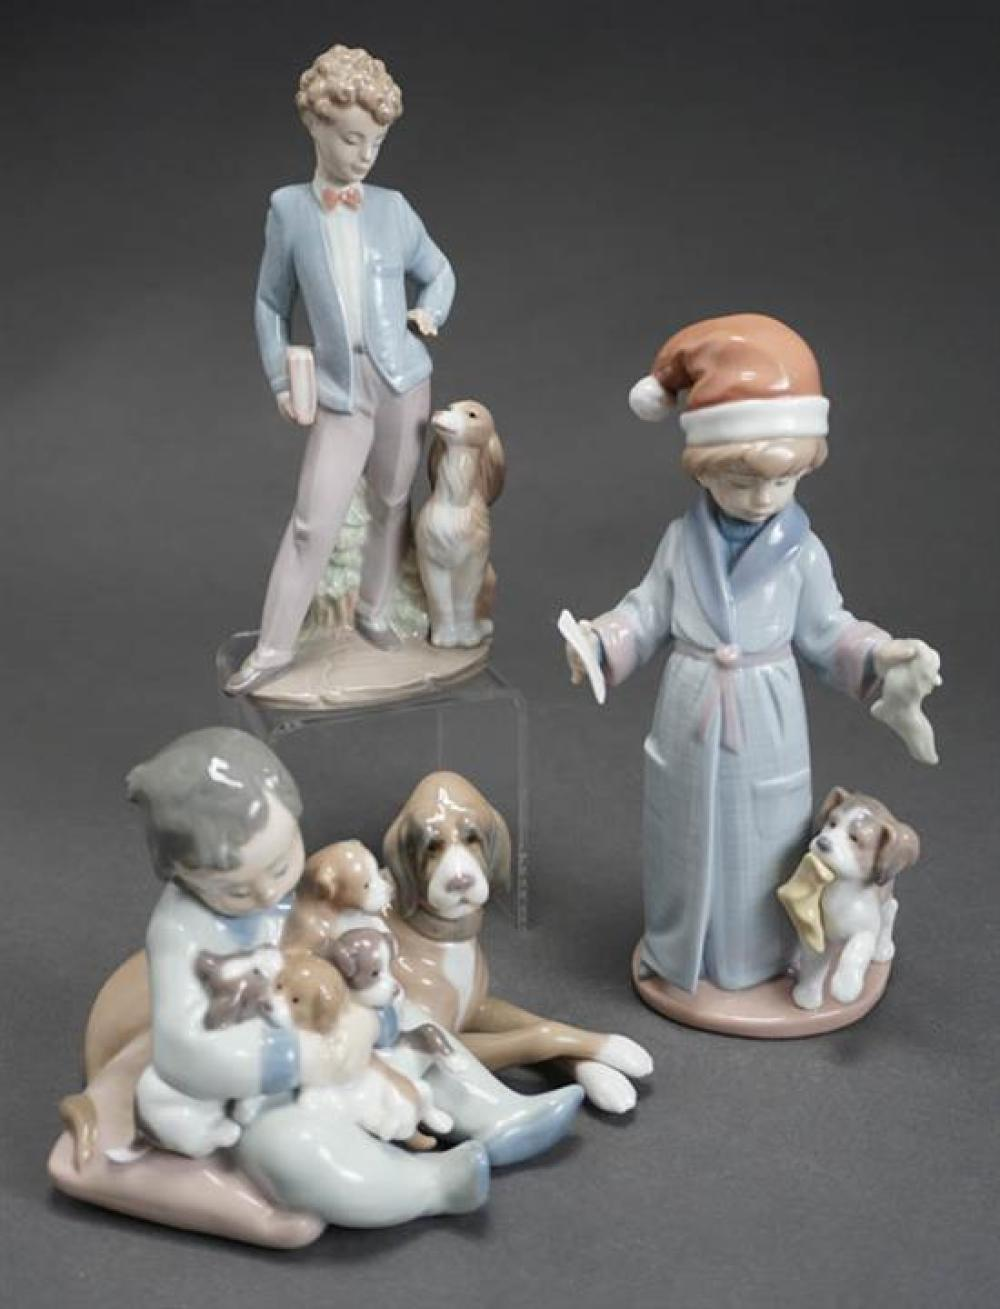 Three Lladró Figures of 'New Playmates', 'Dear Santa' and 'Sunday's Child' Post 1950